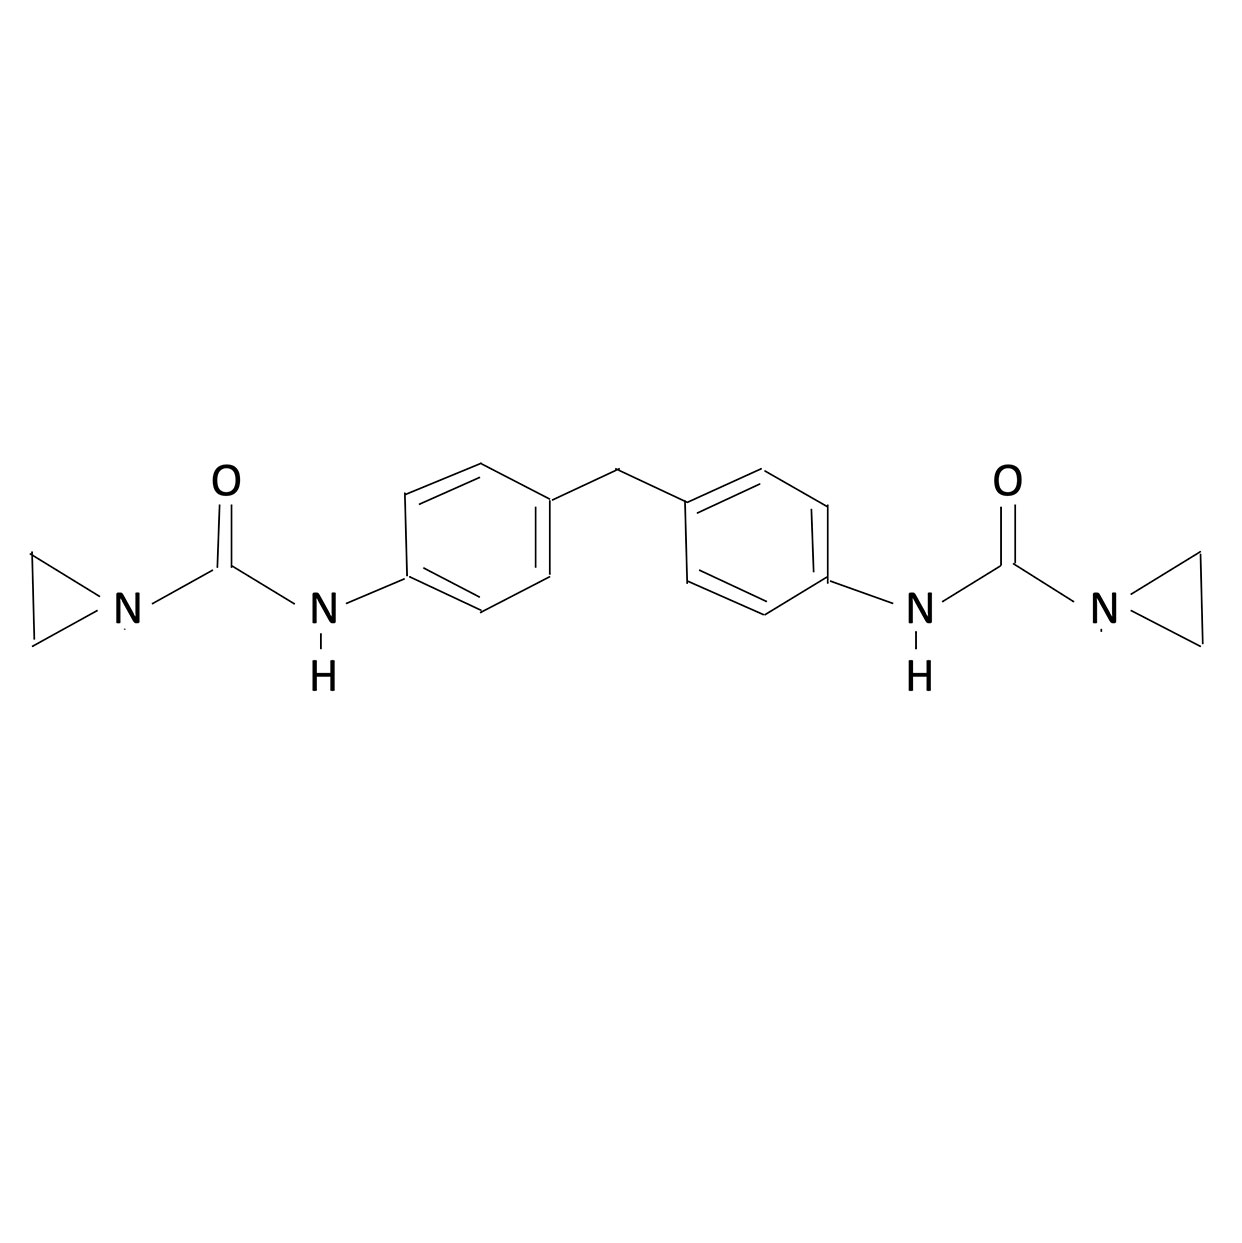 PZBI-25 Polyfunctional Aziridine Chemical Structure